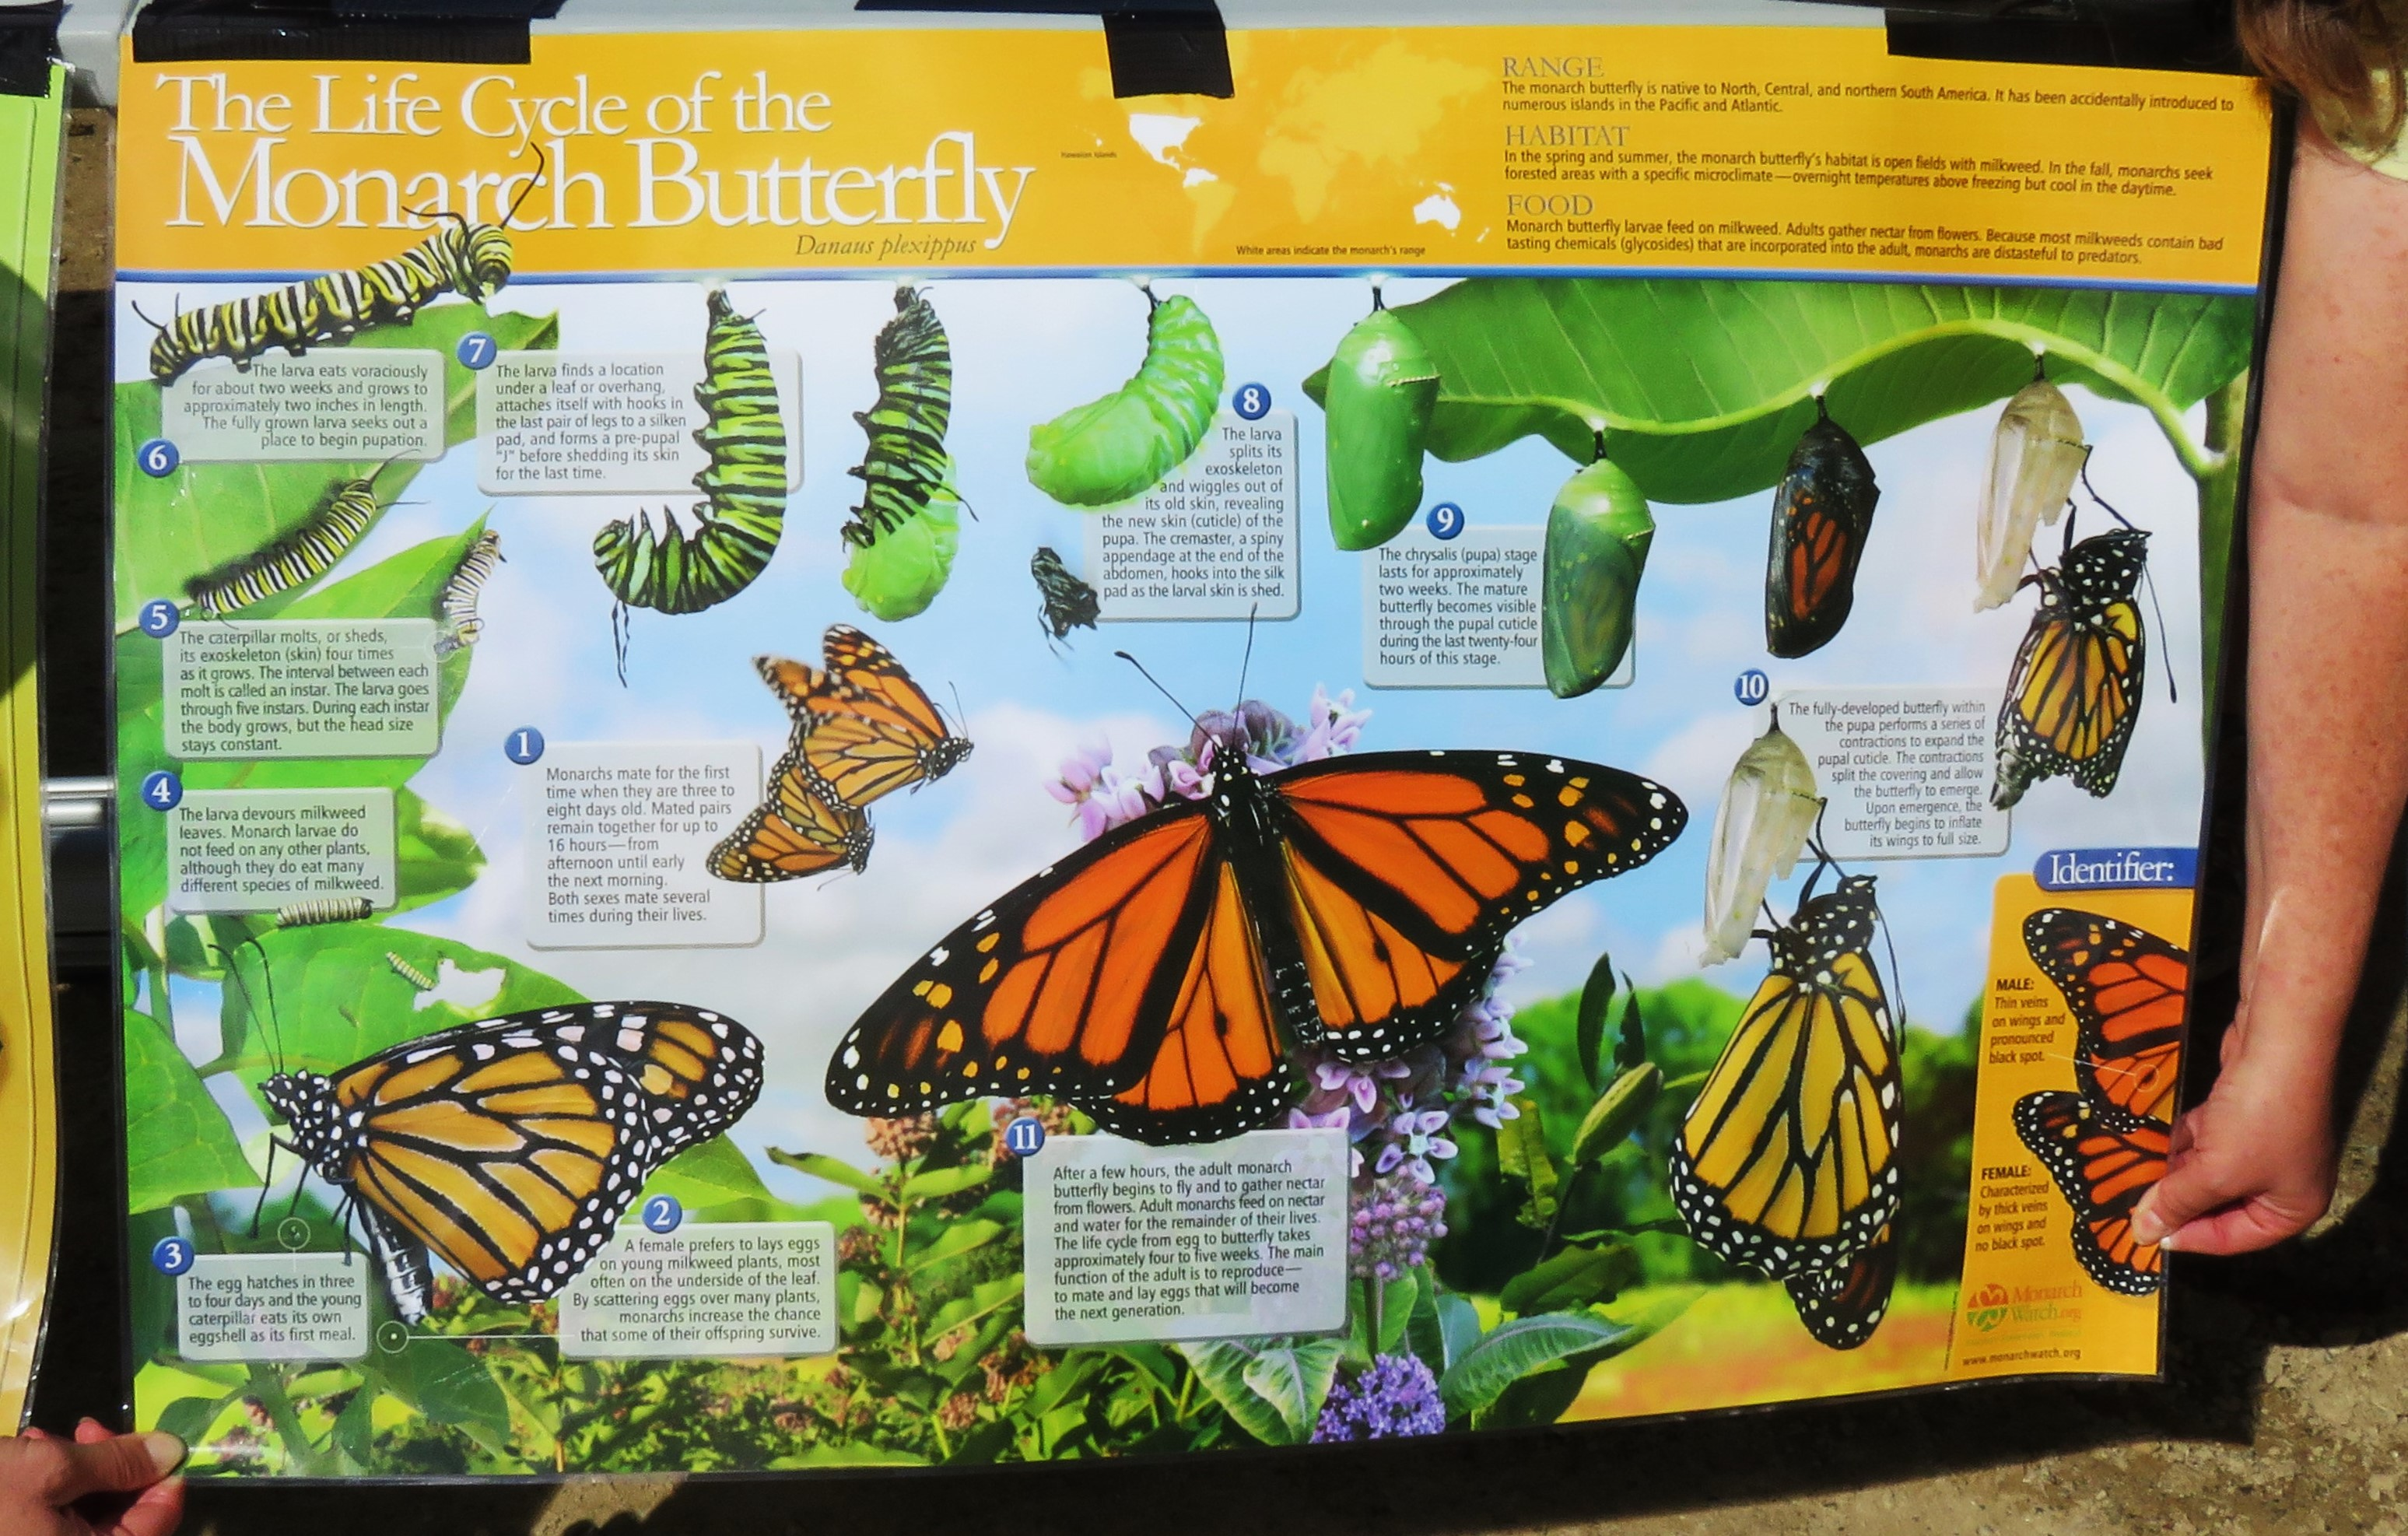 A poster that depicts the life cycle of a monarch butterfly